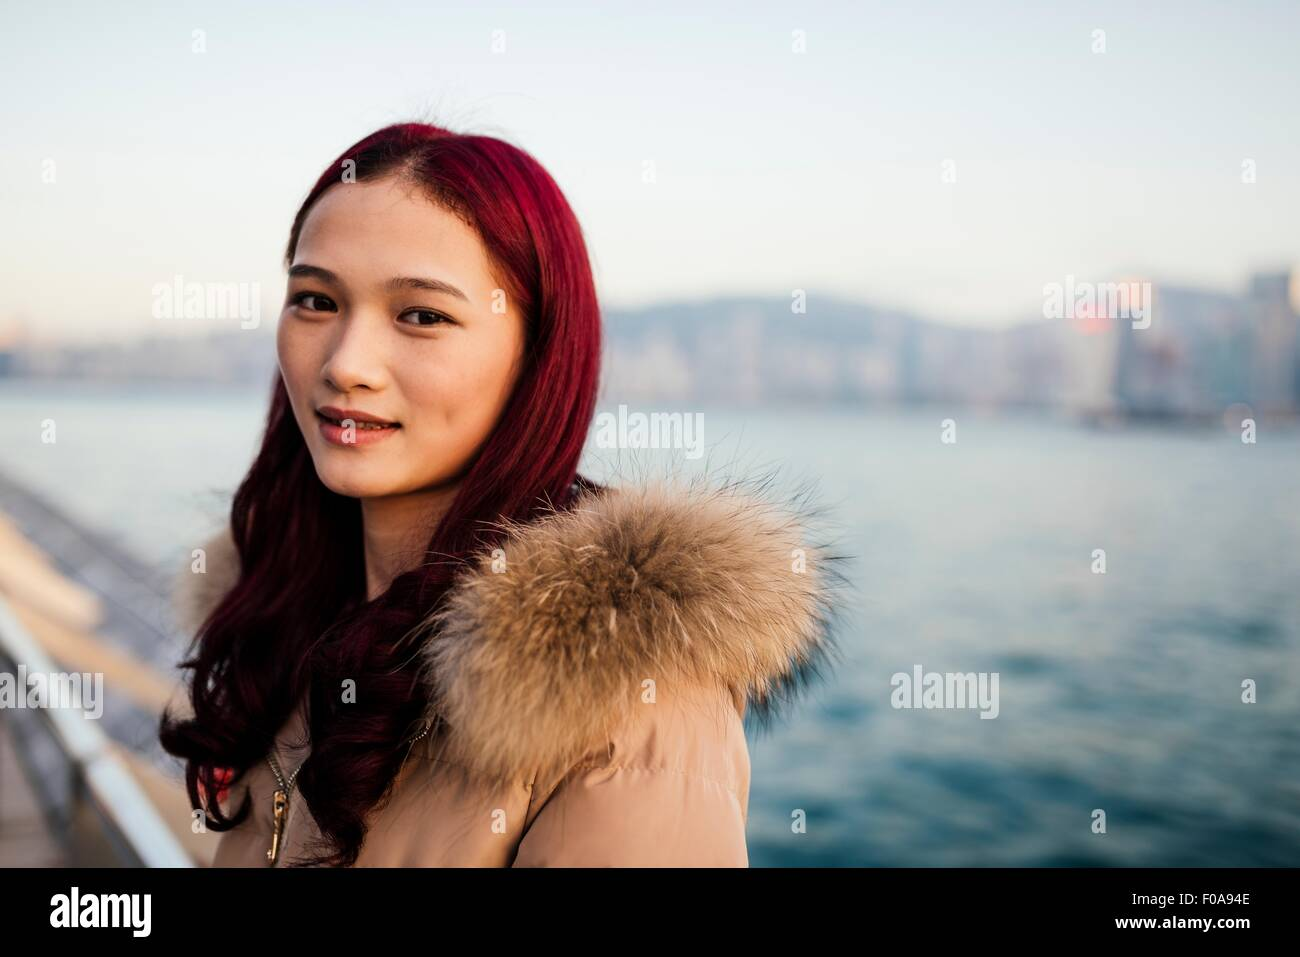 Portrait of young woman wearing fur trim coat with dyed red hair in front of water - Stock Image